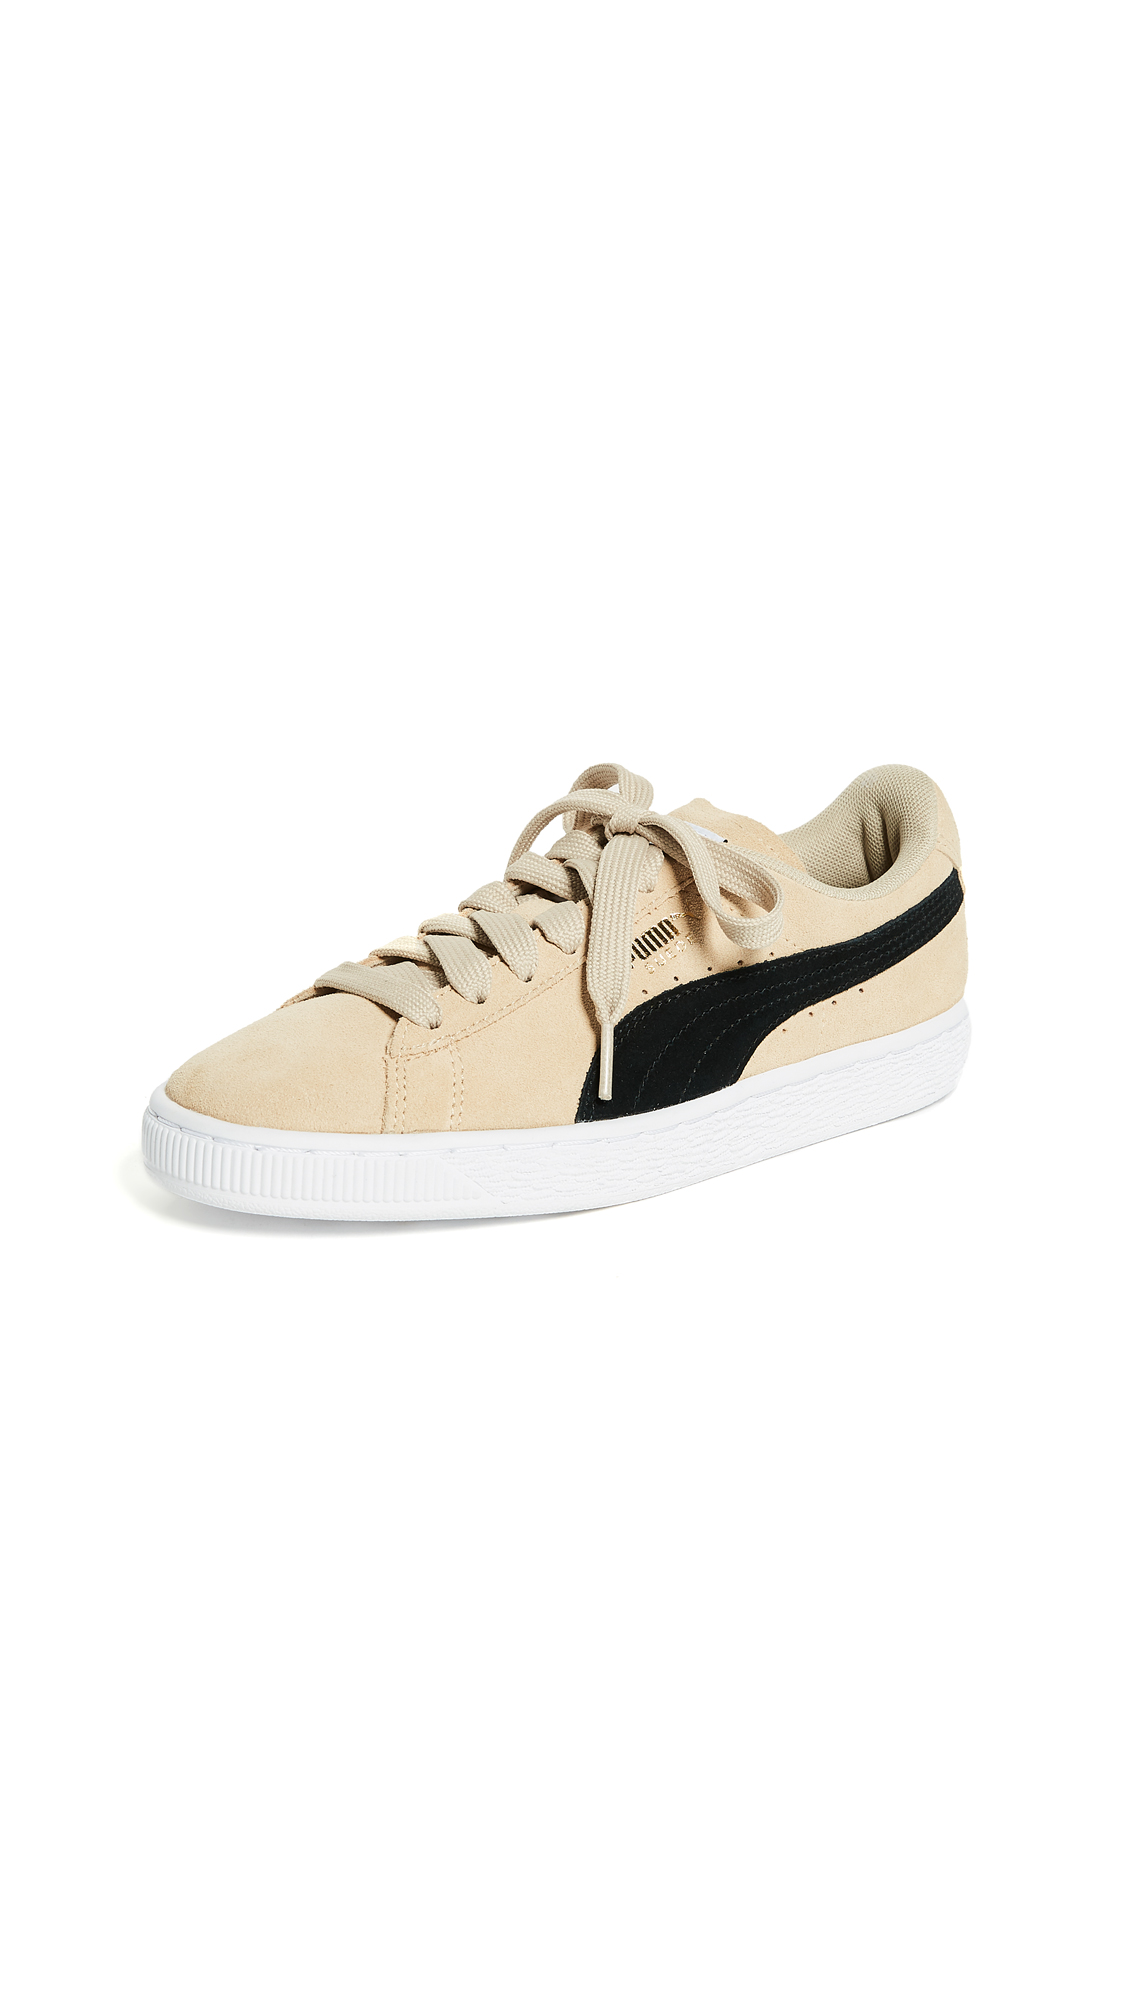 PUMA Suede Classic Sneakers - Pebble/Puma Black